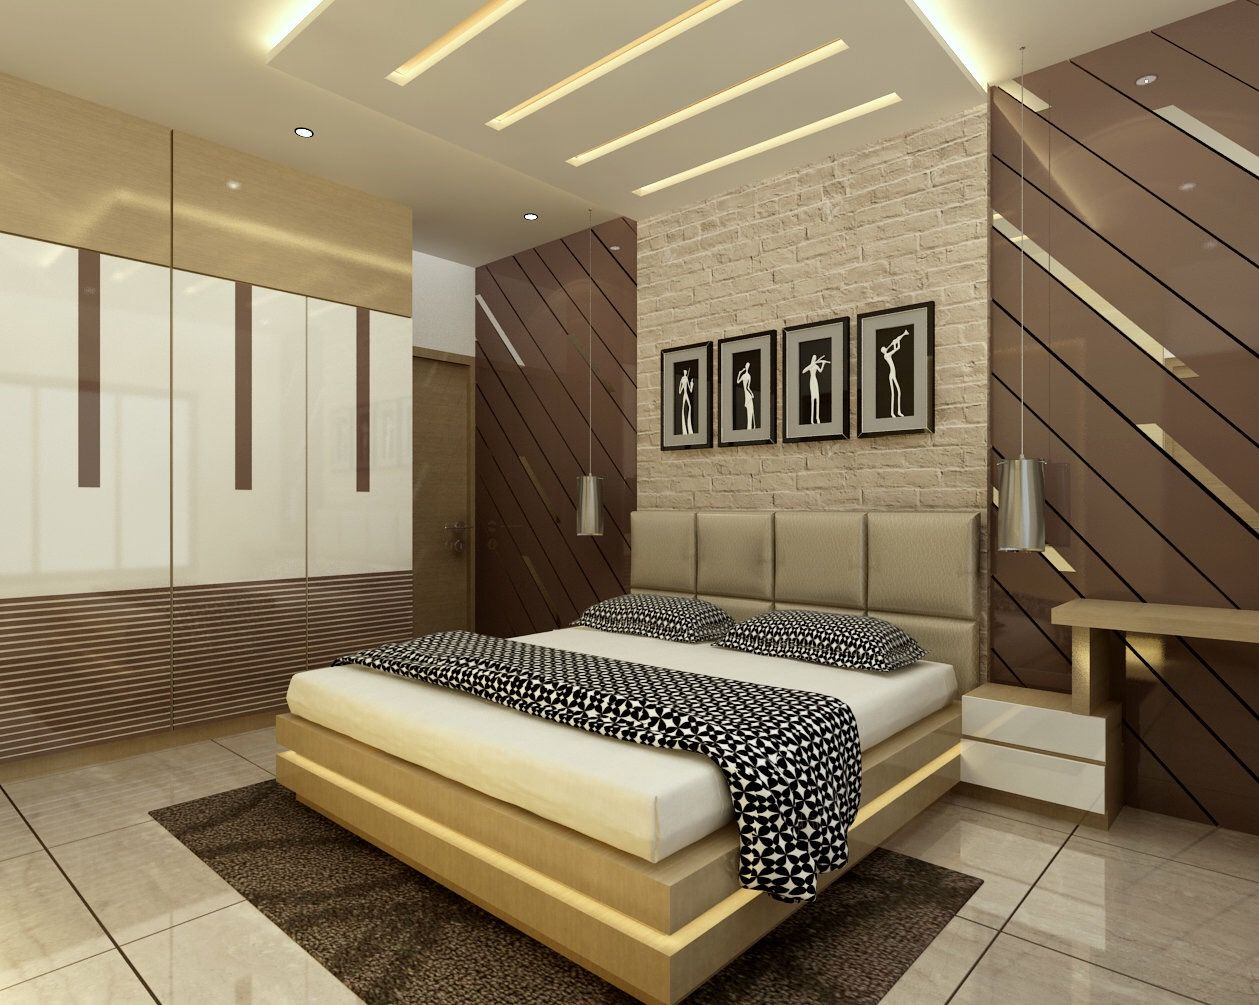 Turnkey Interior Contractor All India Level Bedroom False Ceiling Design Bedroom Furniture Design Ceiling Design Bedroom